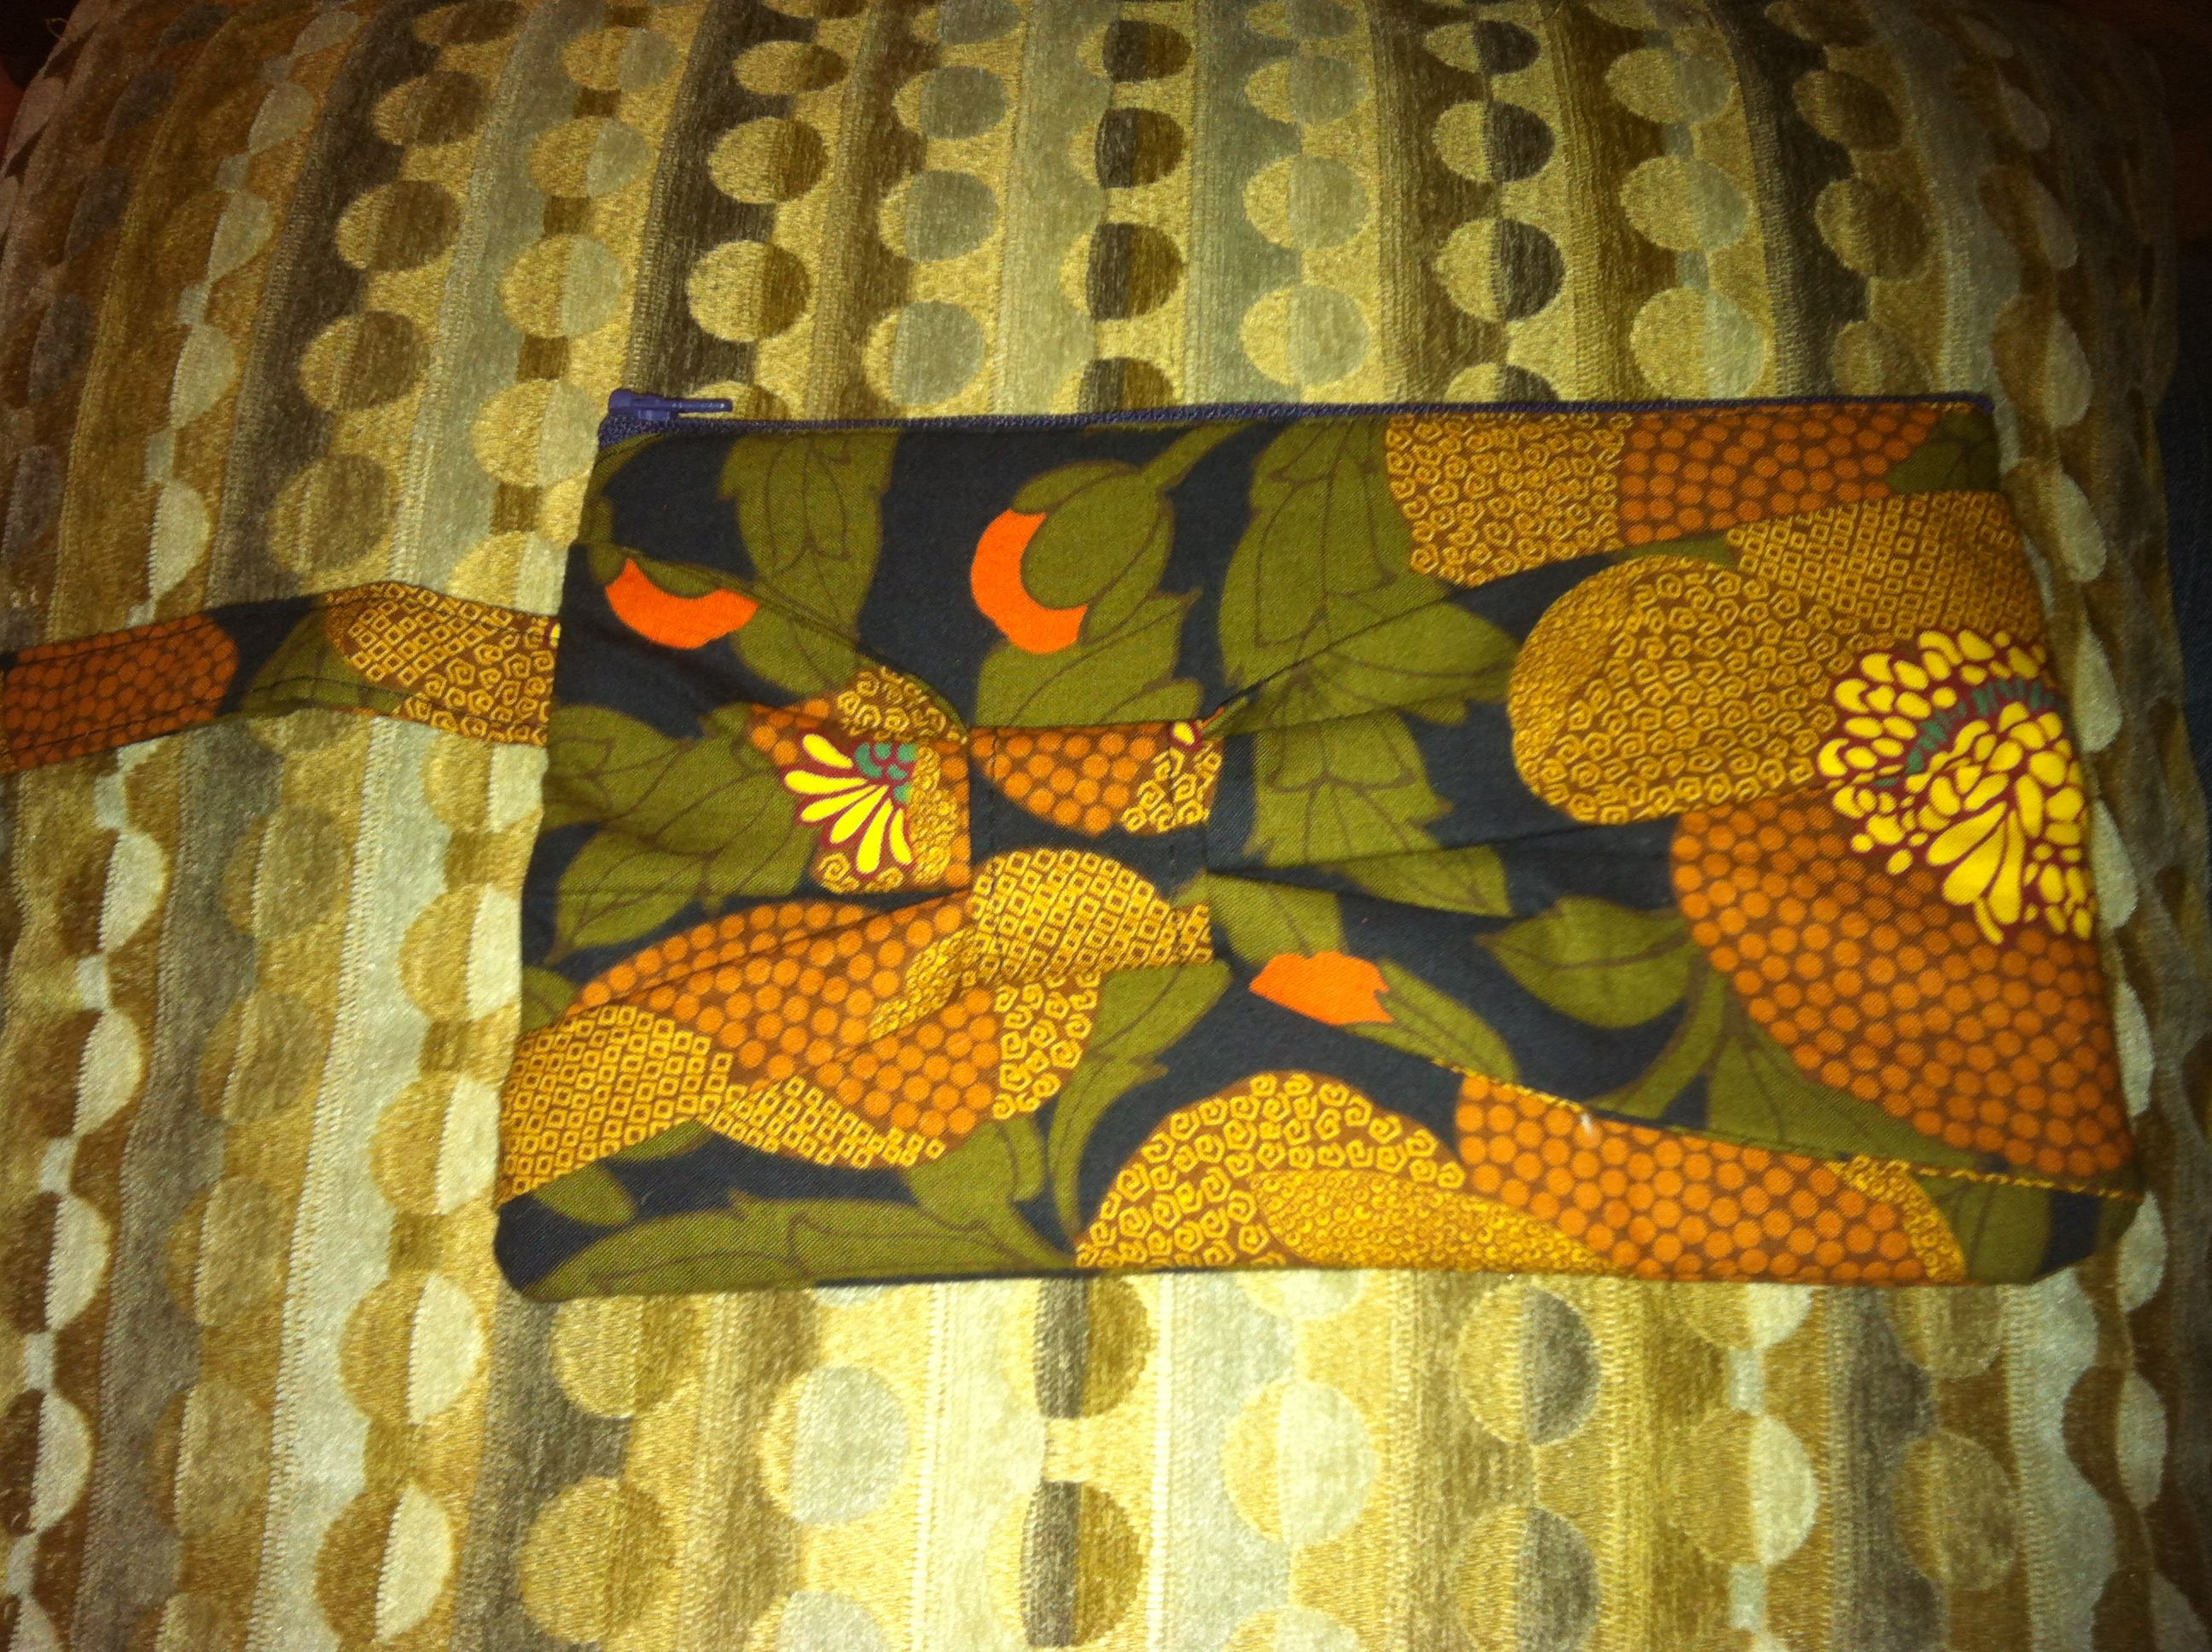 Shannon can make this hand bag for you in many different fabrics! Inquire here for orders! $25